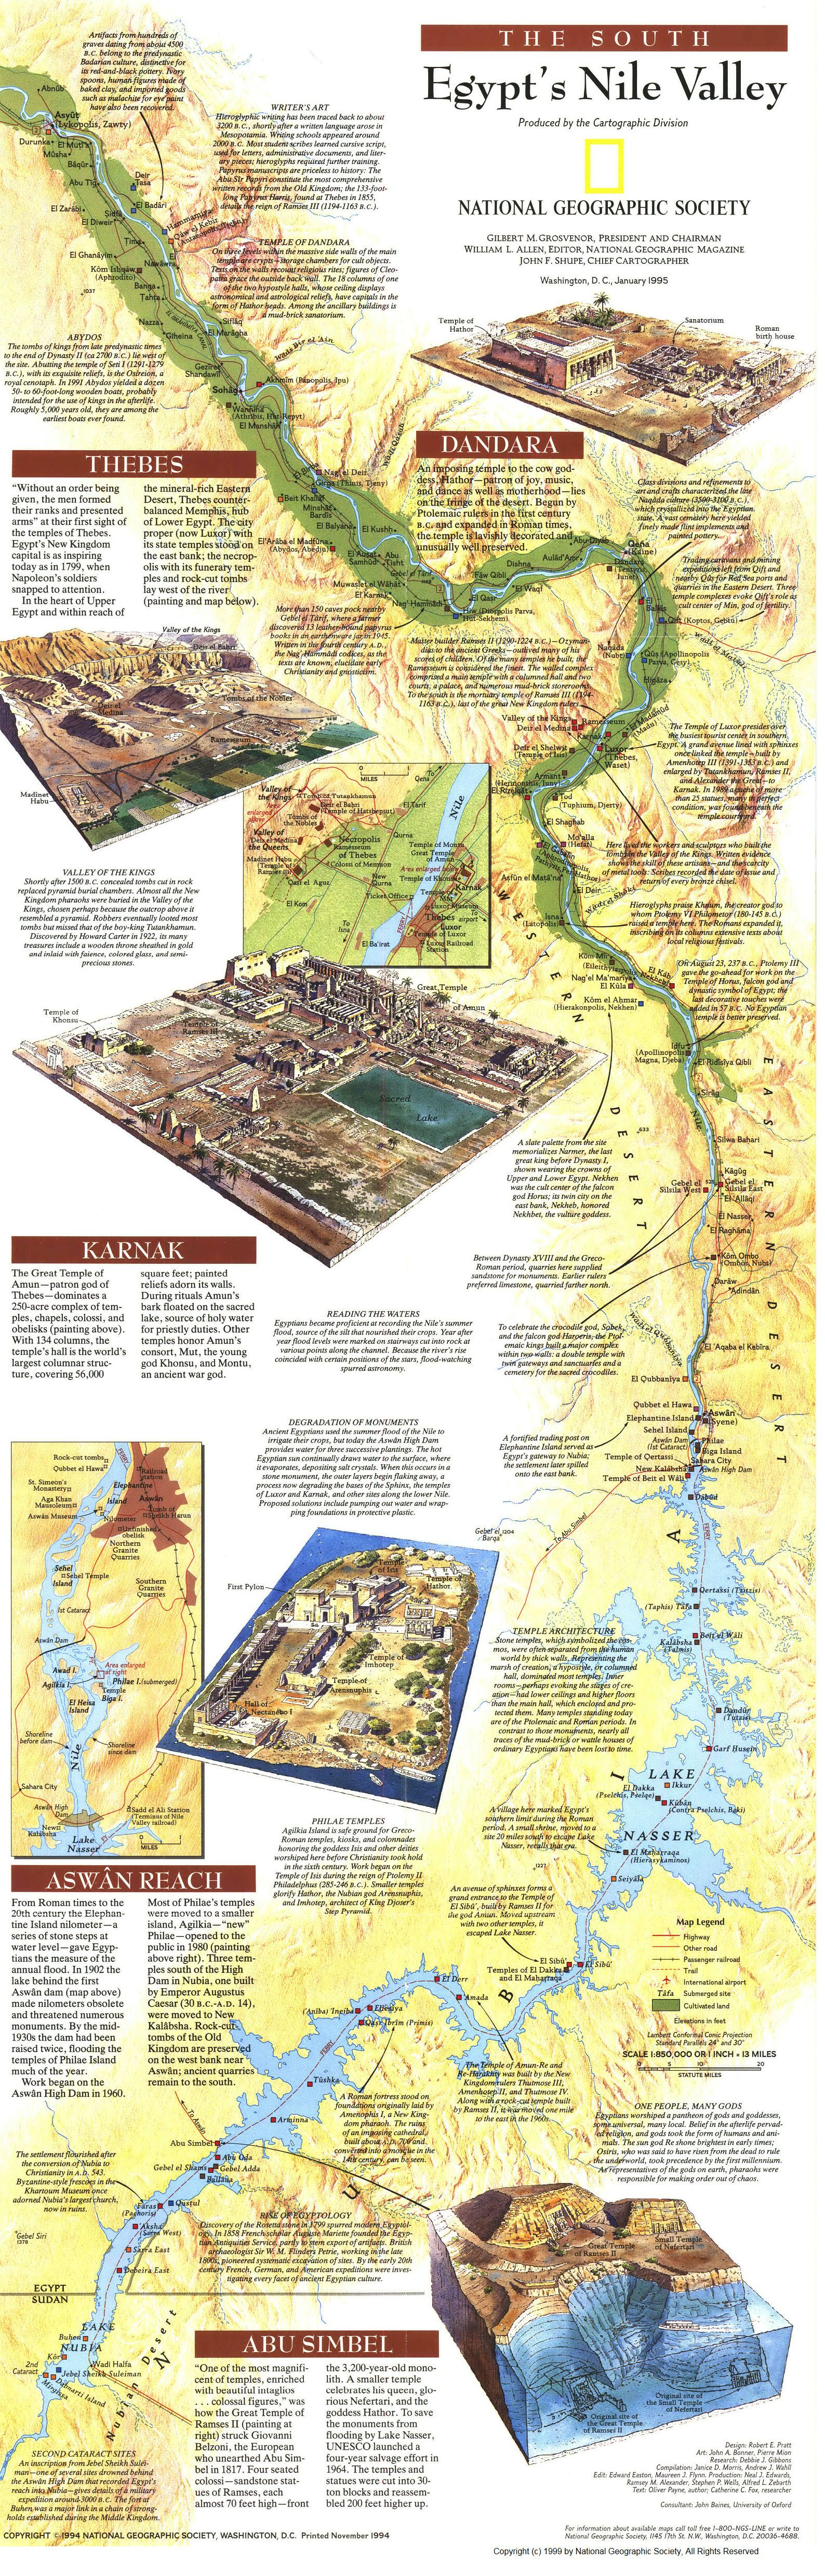 ancient river valley civilization egypt Indus valley civilization is one of the oldest civilization that flourished along the indus river around 3300 - 1300 bc harappa and mohenjo daro are the notable cities.